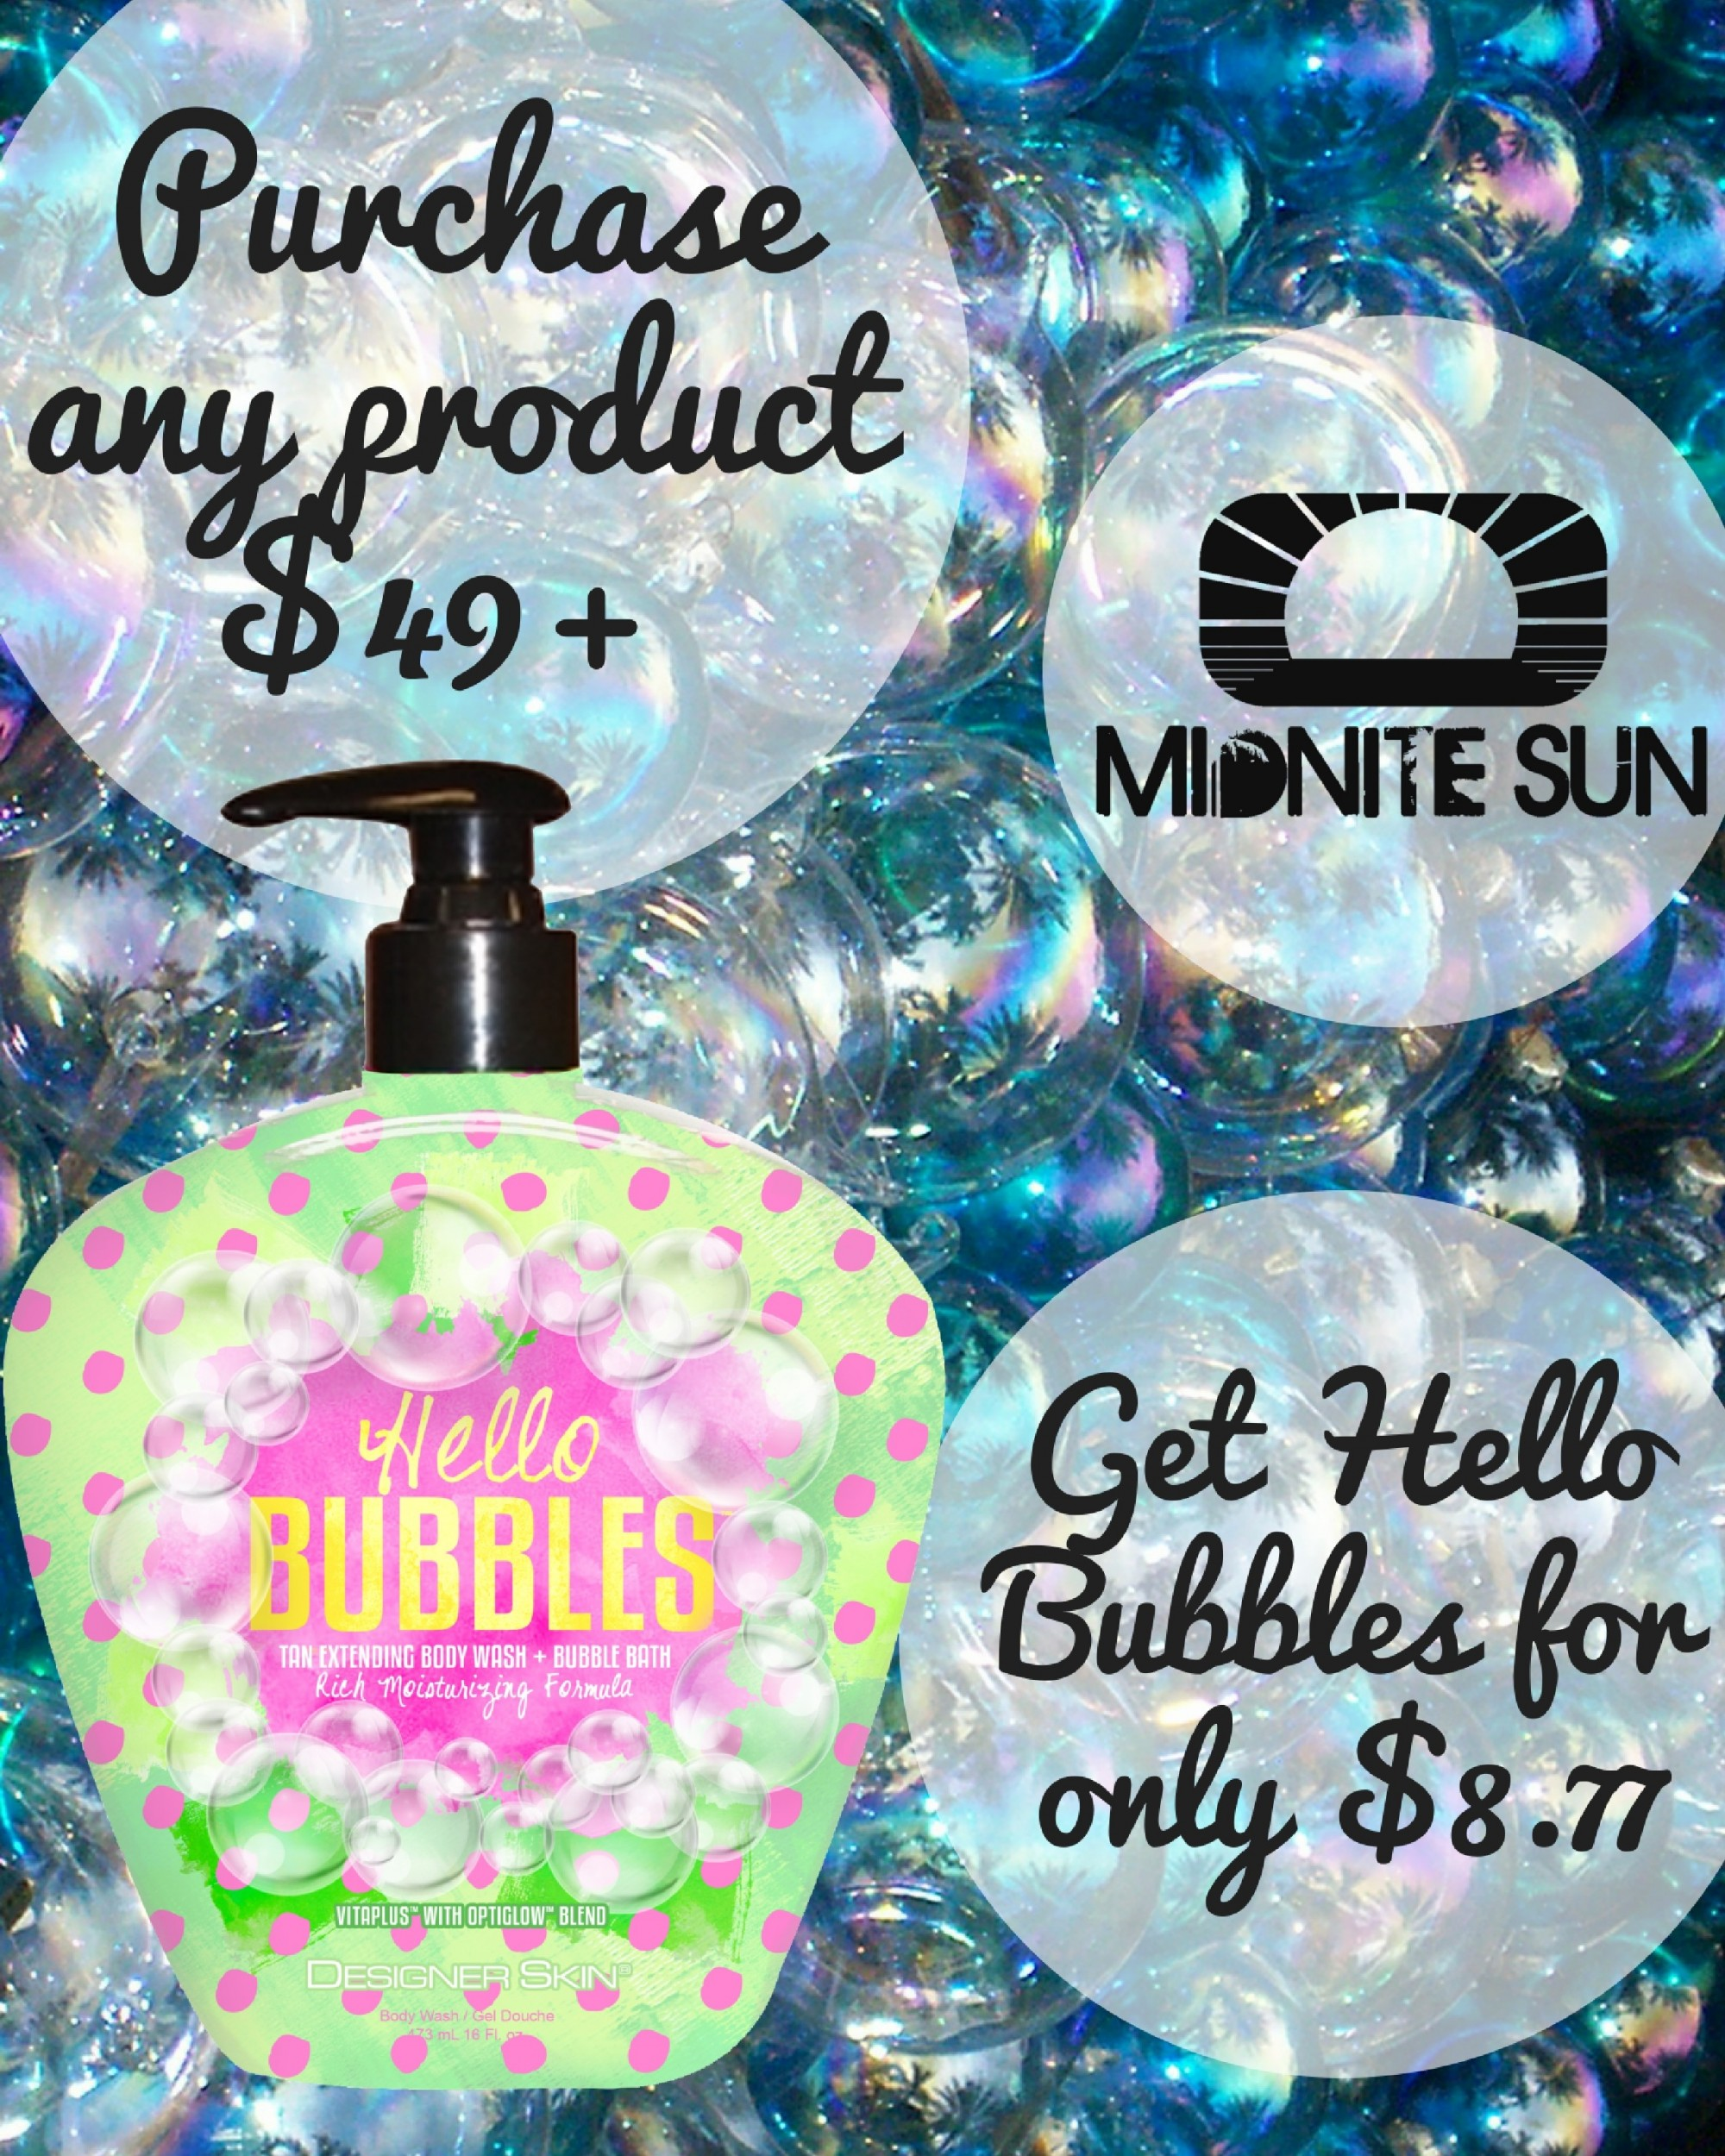 Purchase any product $49+ and get Hello Bubbles for only $9.99